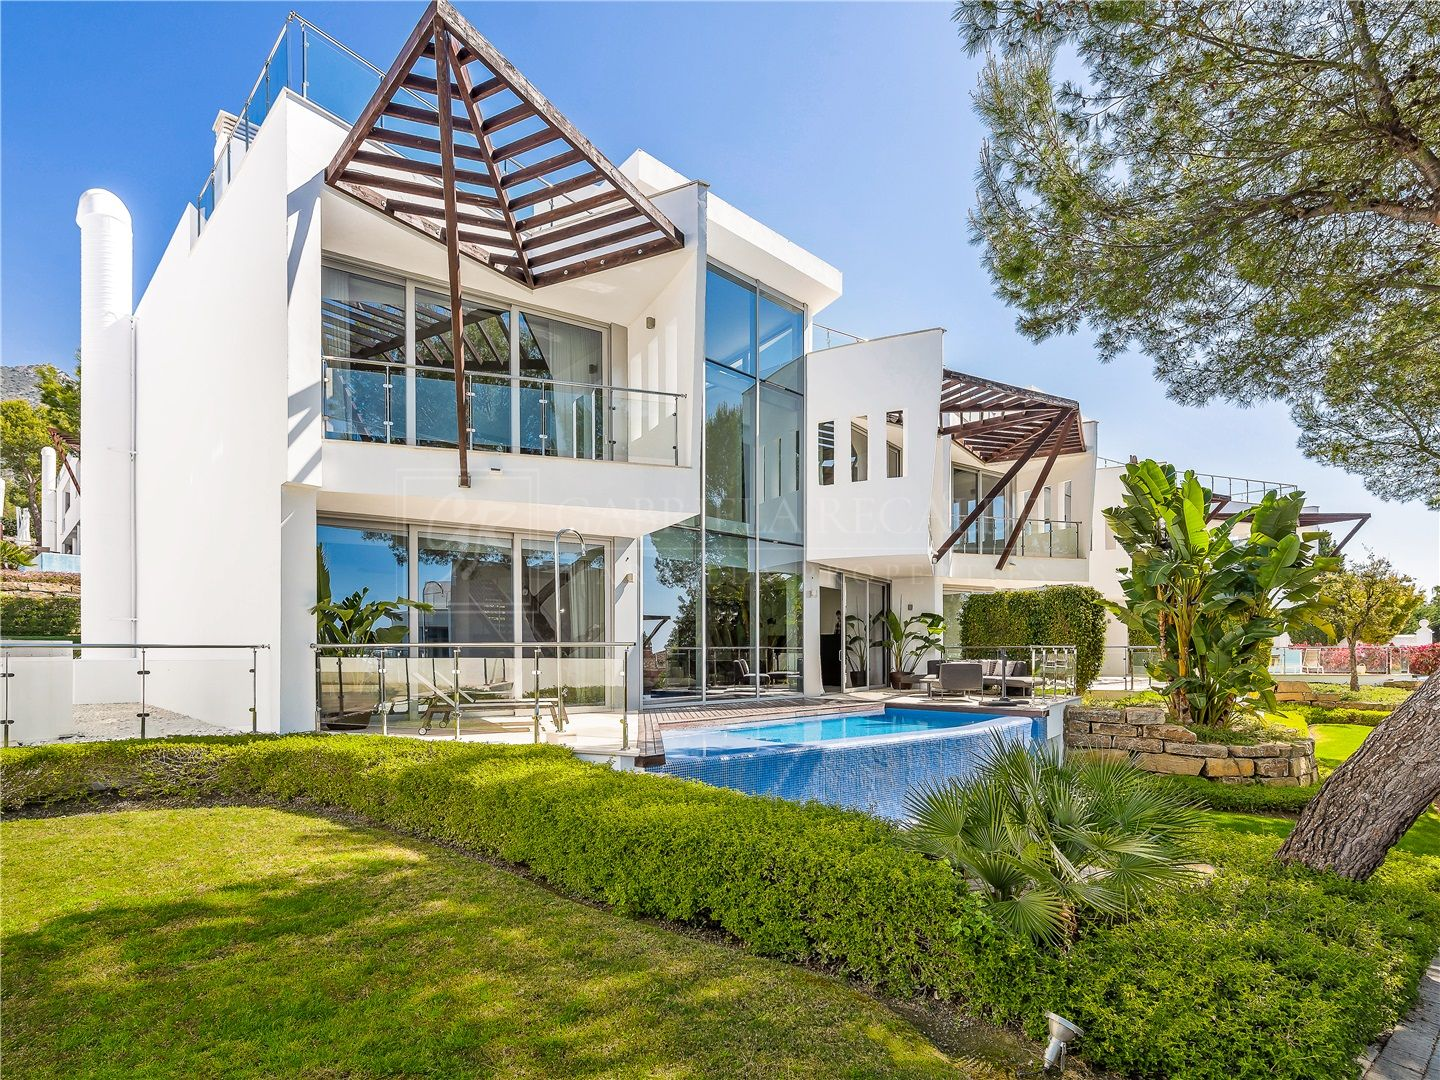 Luxurious semi detached villas with sea and mountain views in the exclusive area of Sierra Blanca, Marbella